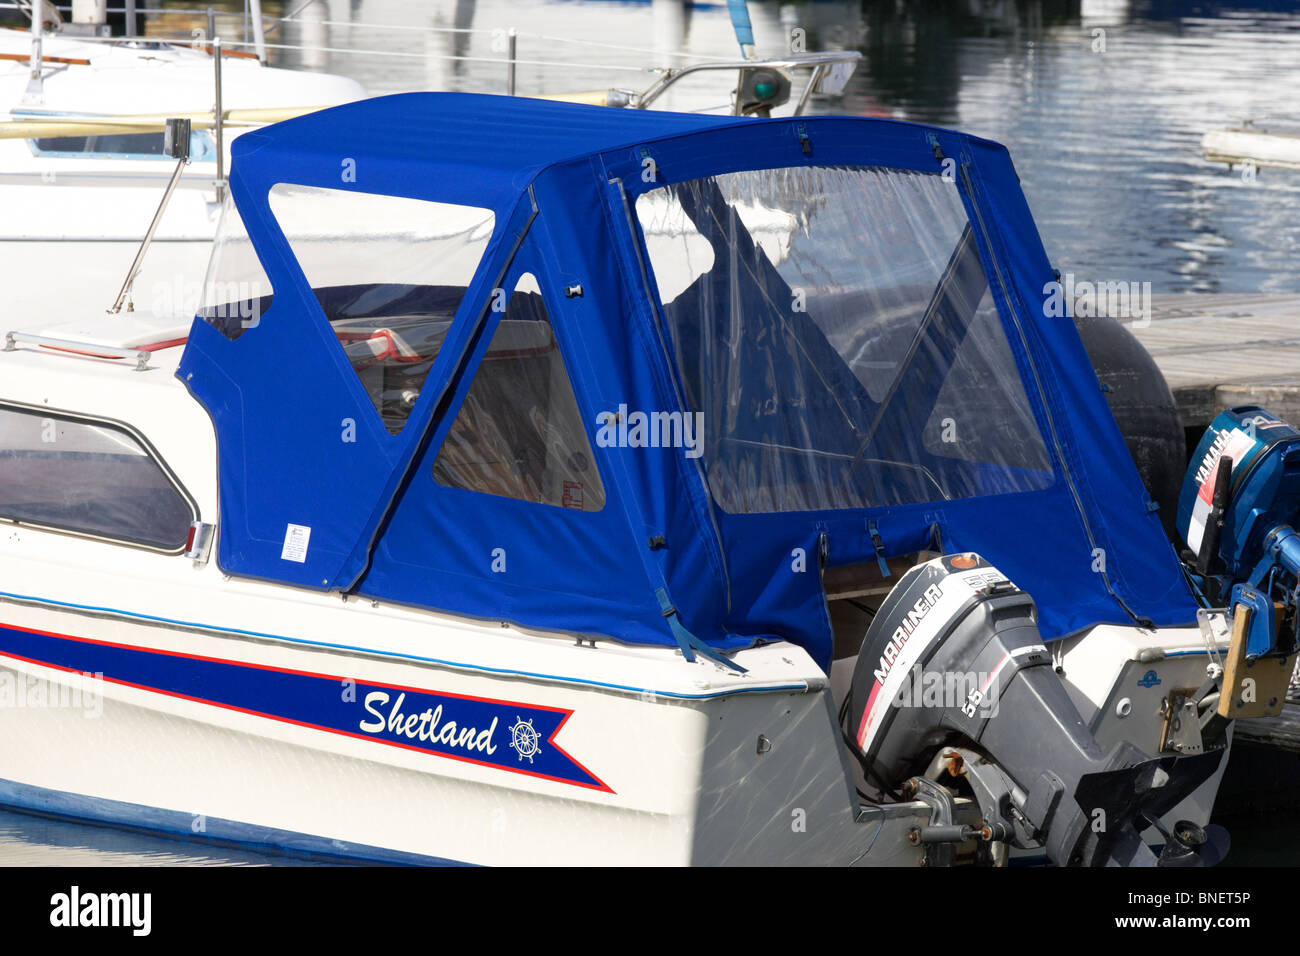 pram cover boat canopy covering shetland boat berthed in marina county down northern ireland uk - Stock Image